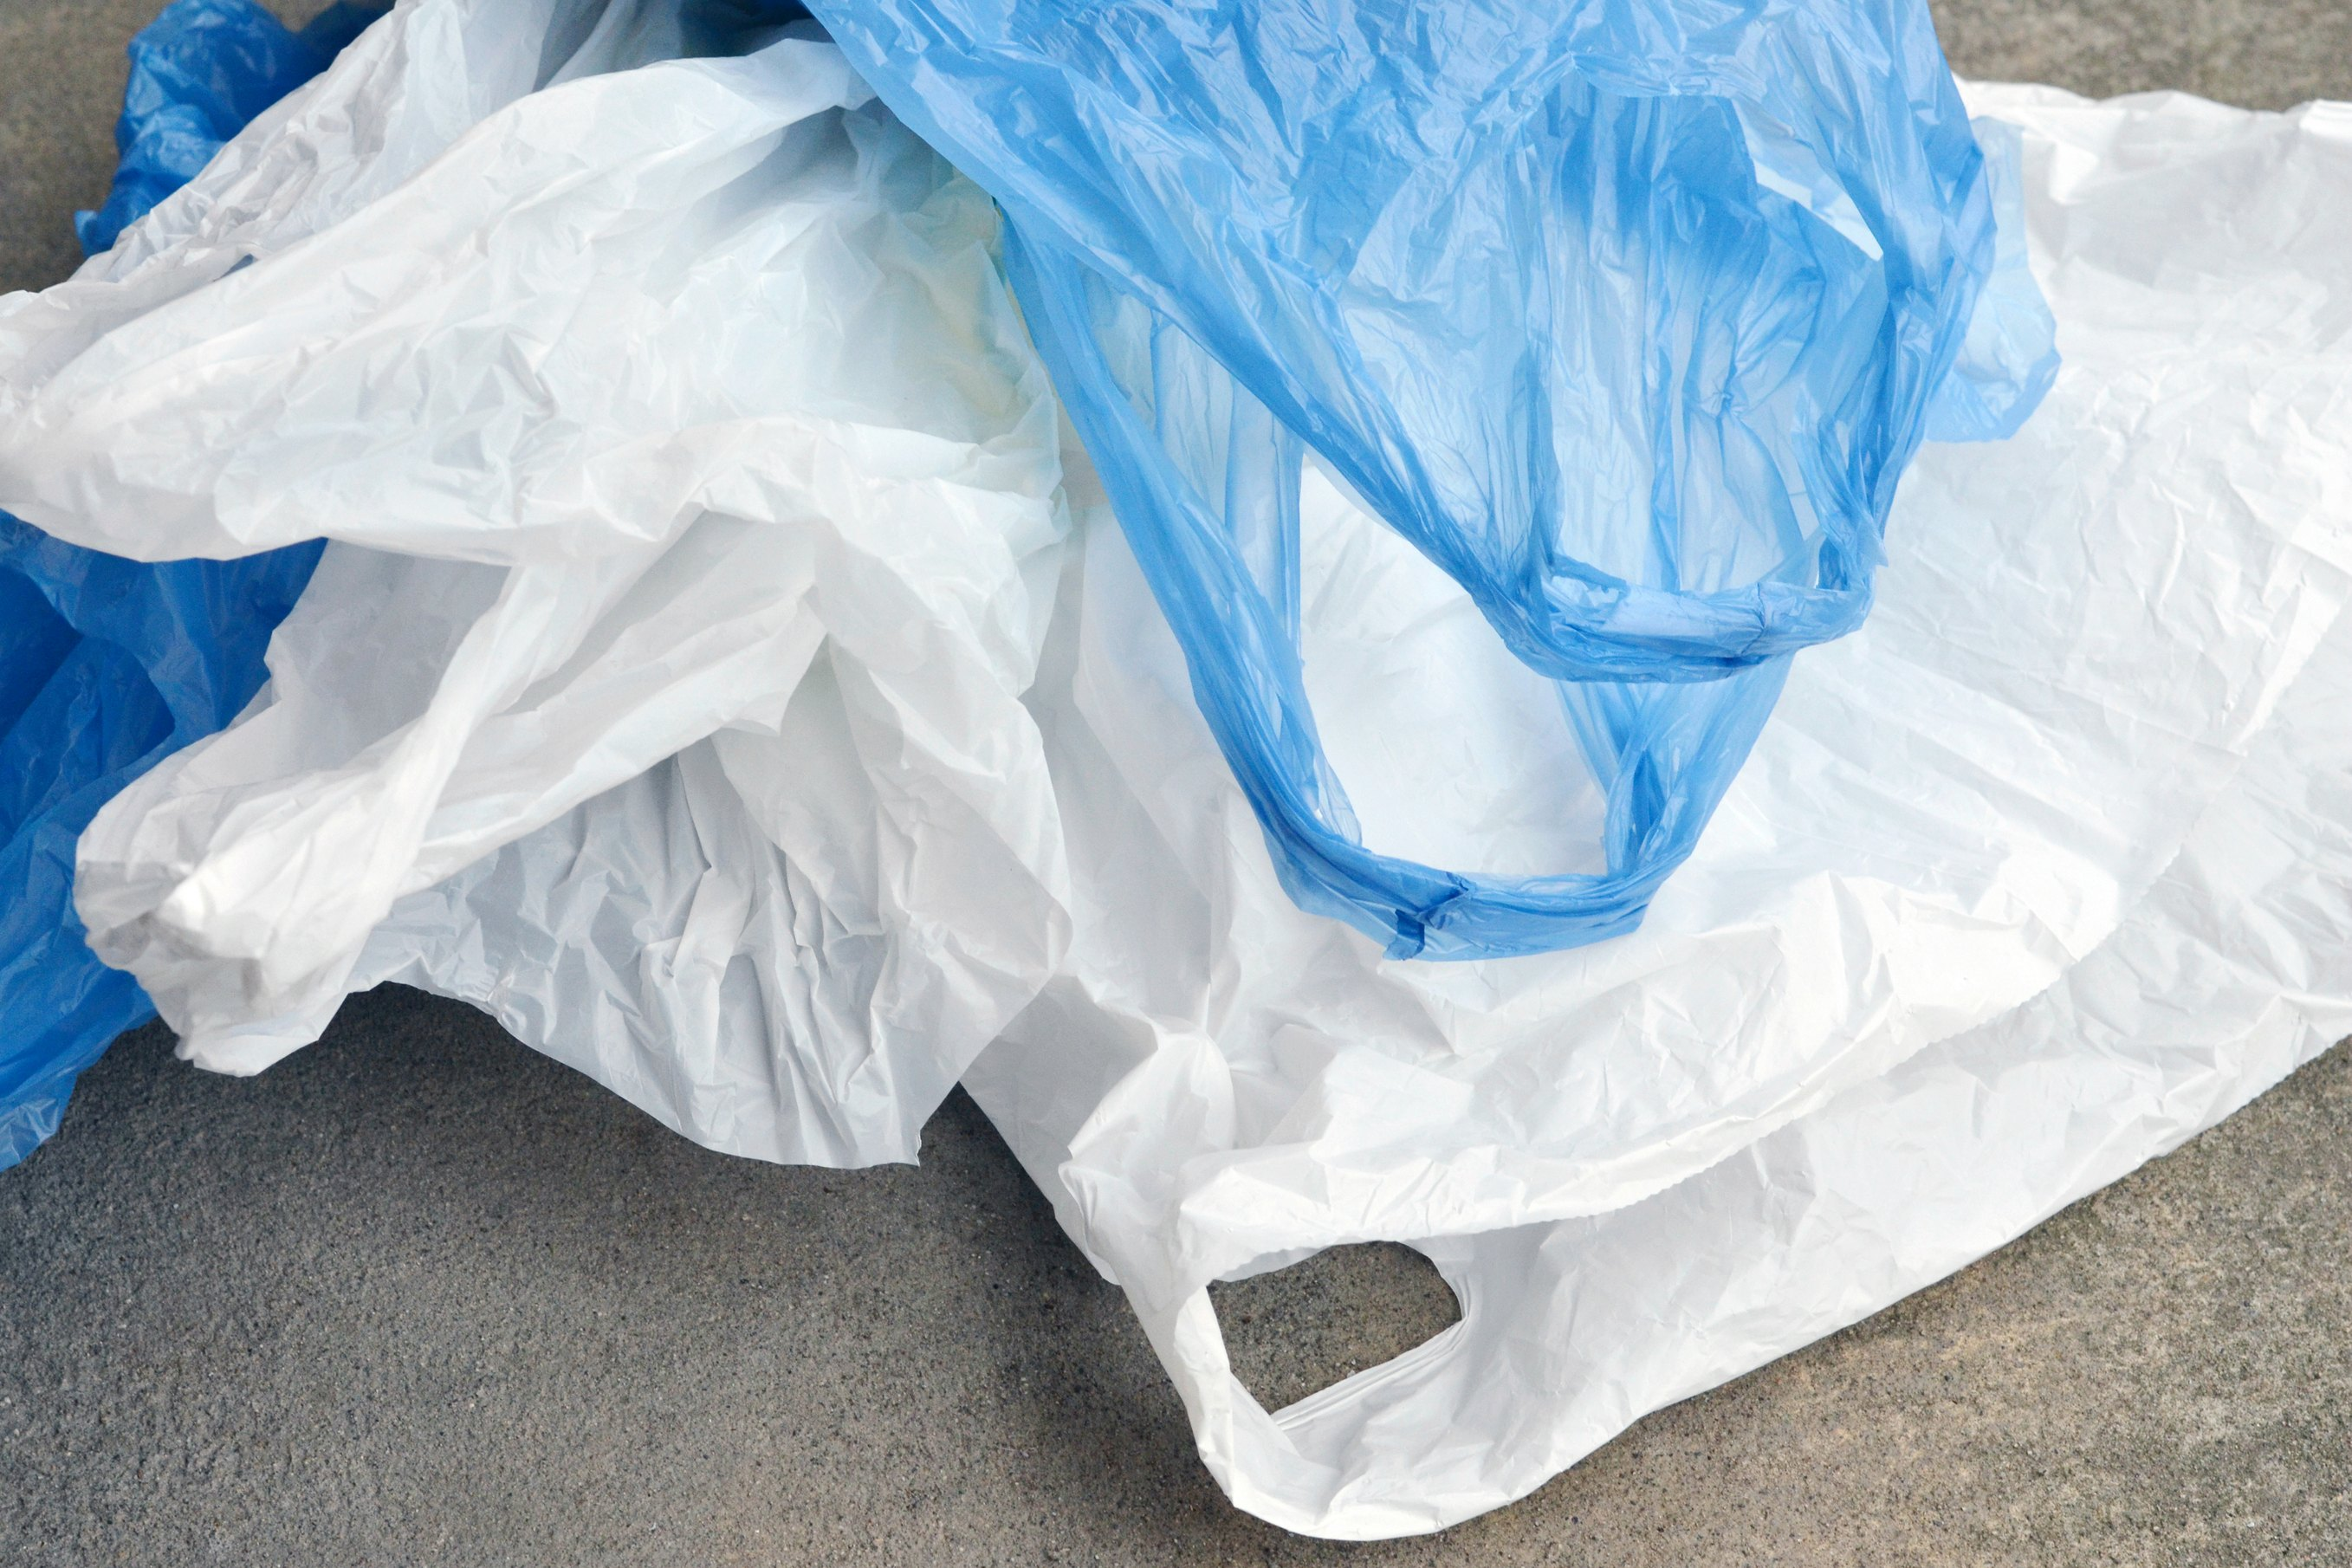 English shoppers ditch the carrier bag - News - Cardiff ...